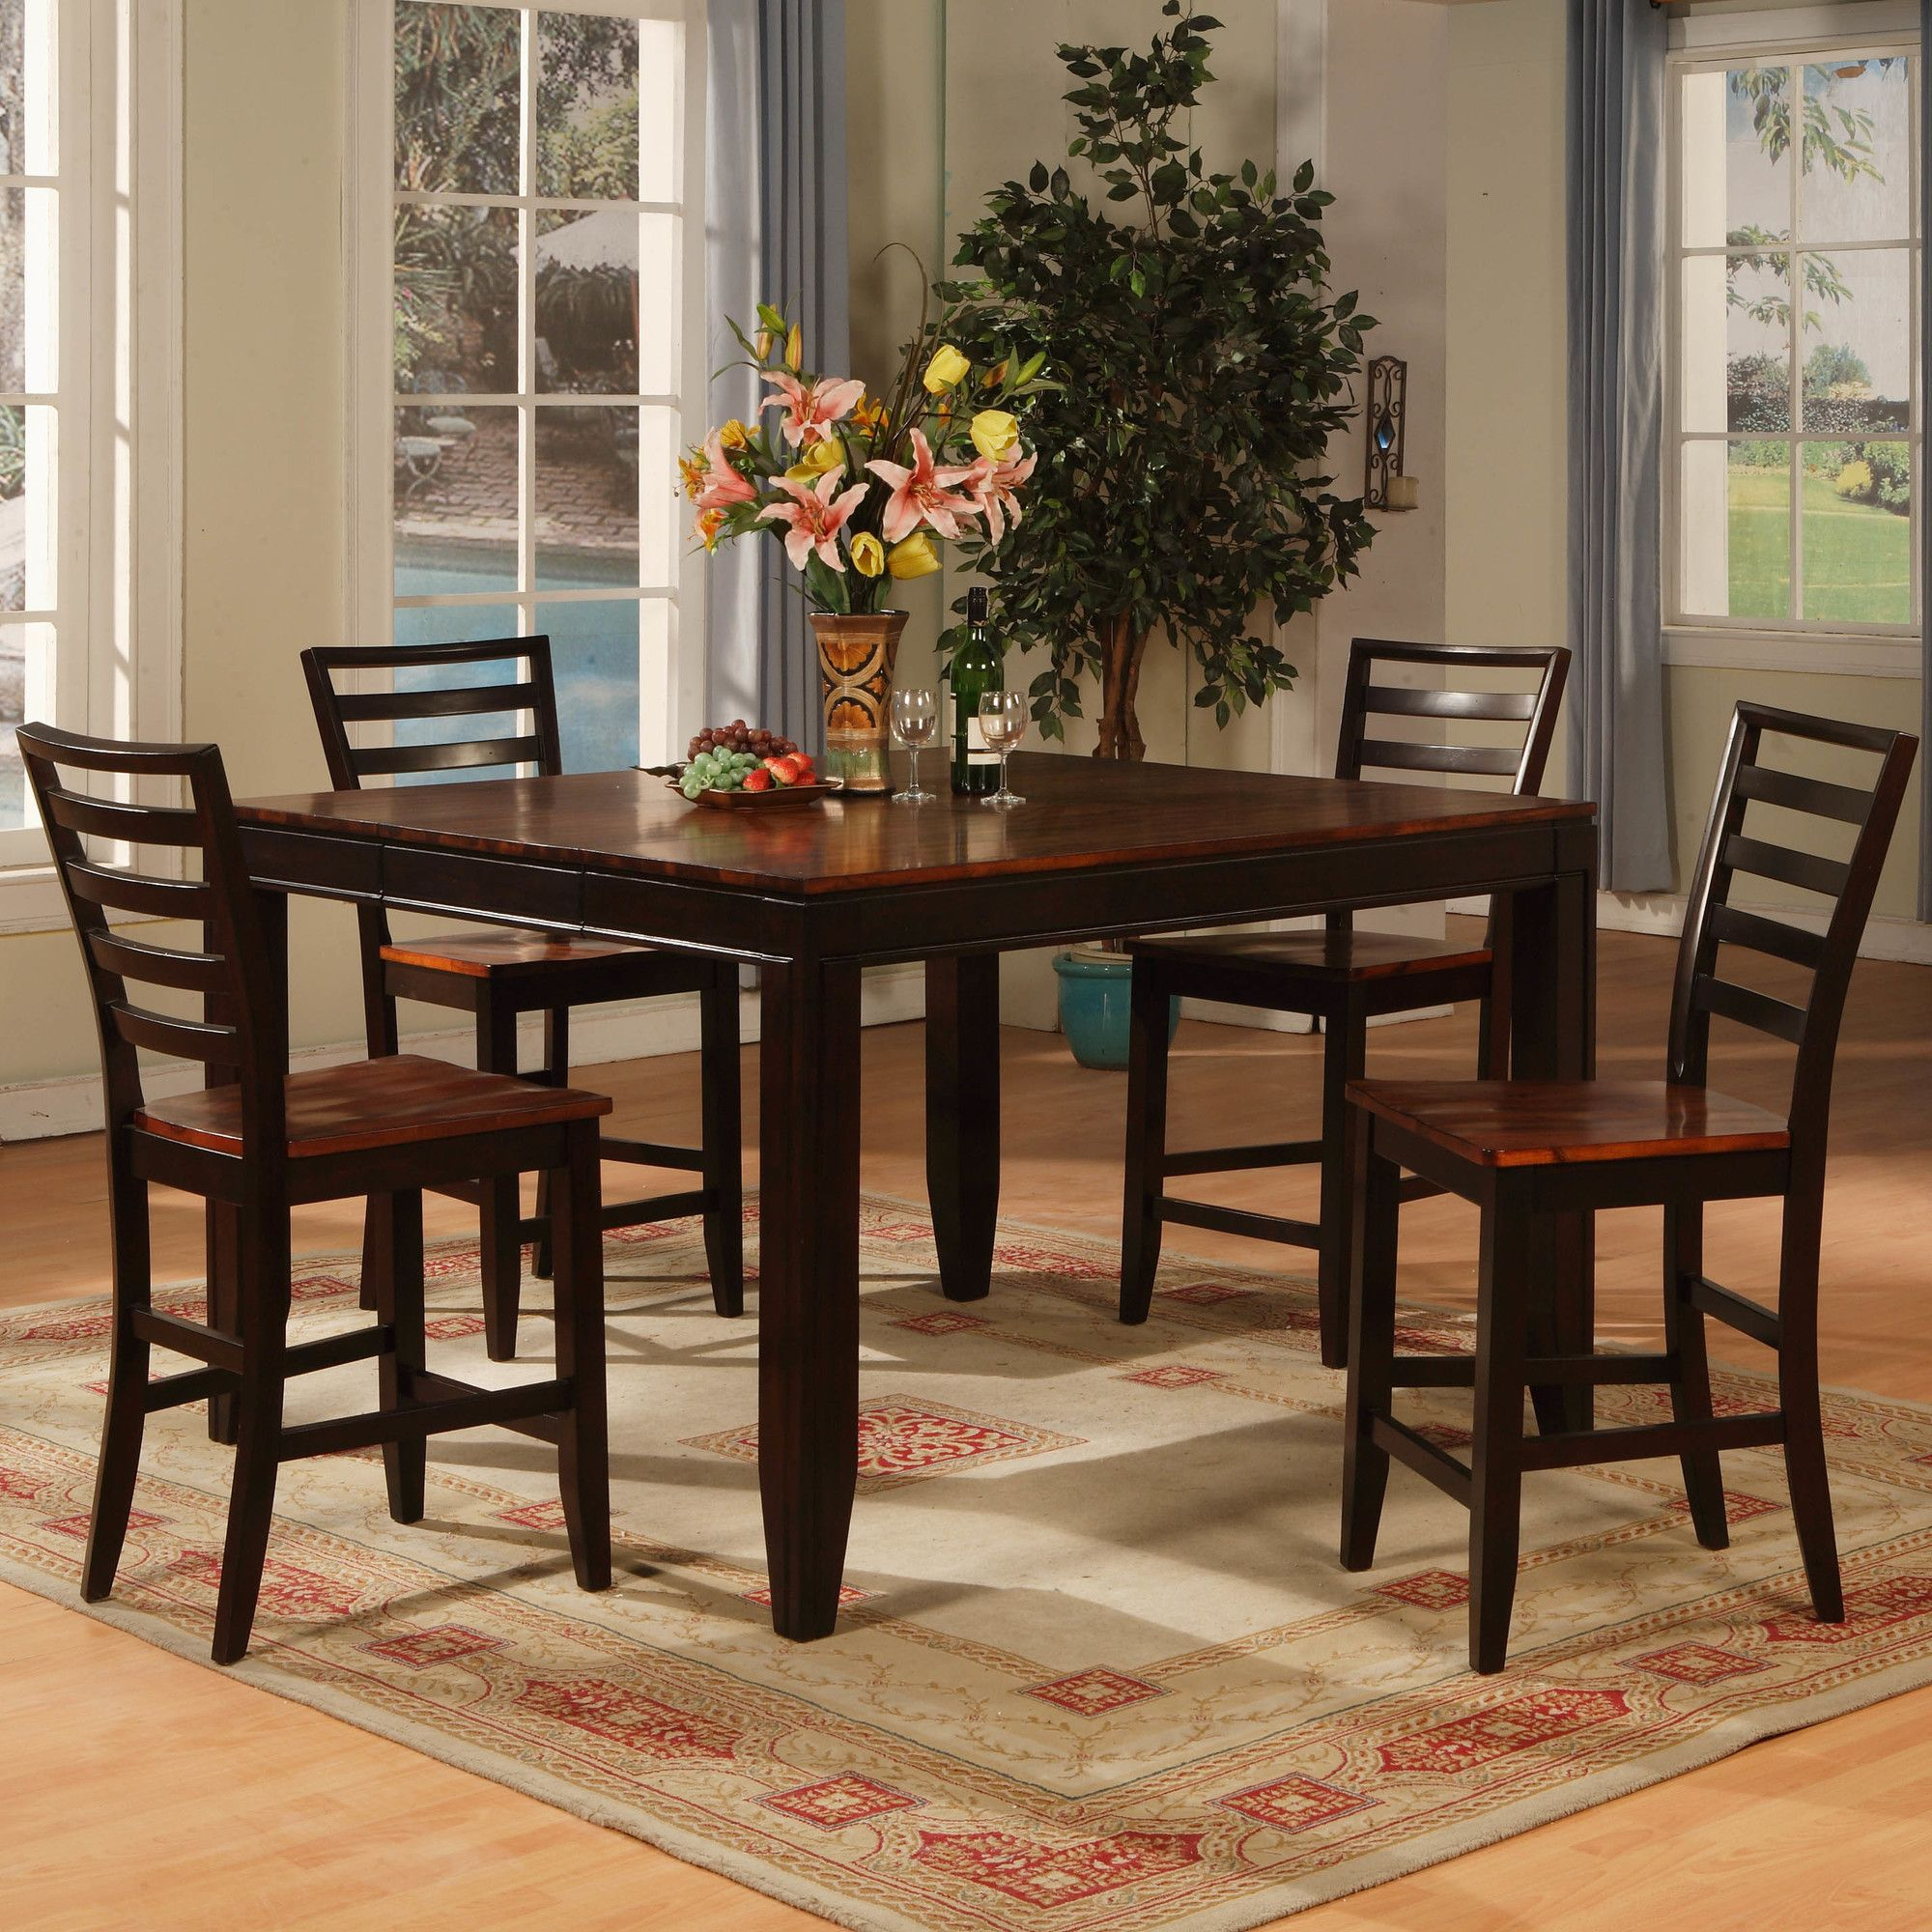 Counter Height Butterfly Leaf Dining Table Extendable Dining Table Solid Wood Dining Chairs Counter Height Dining Table